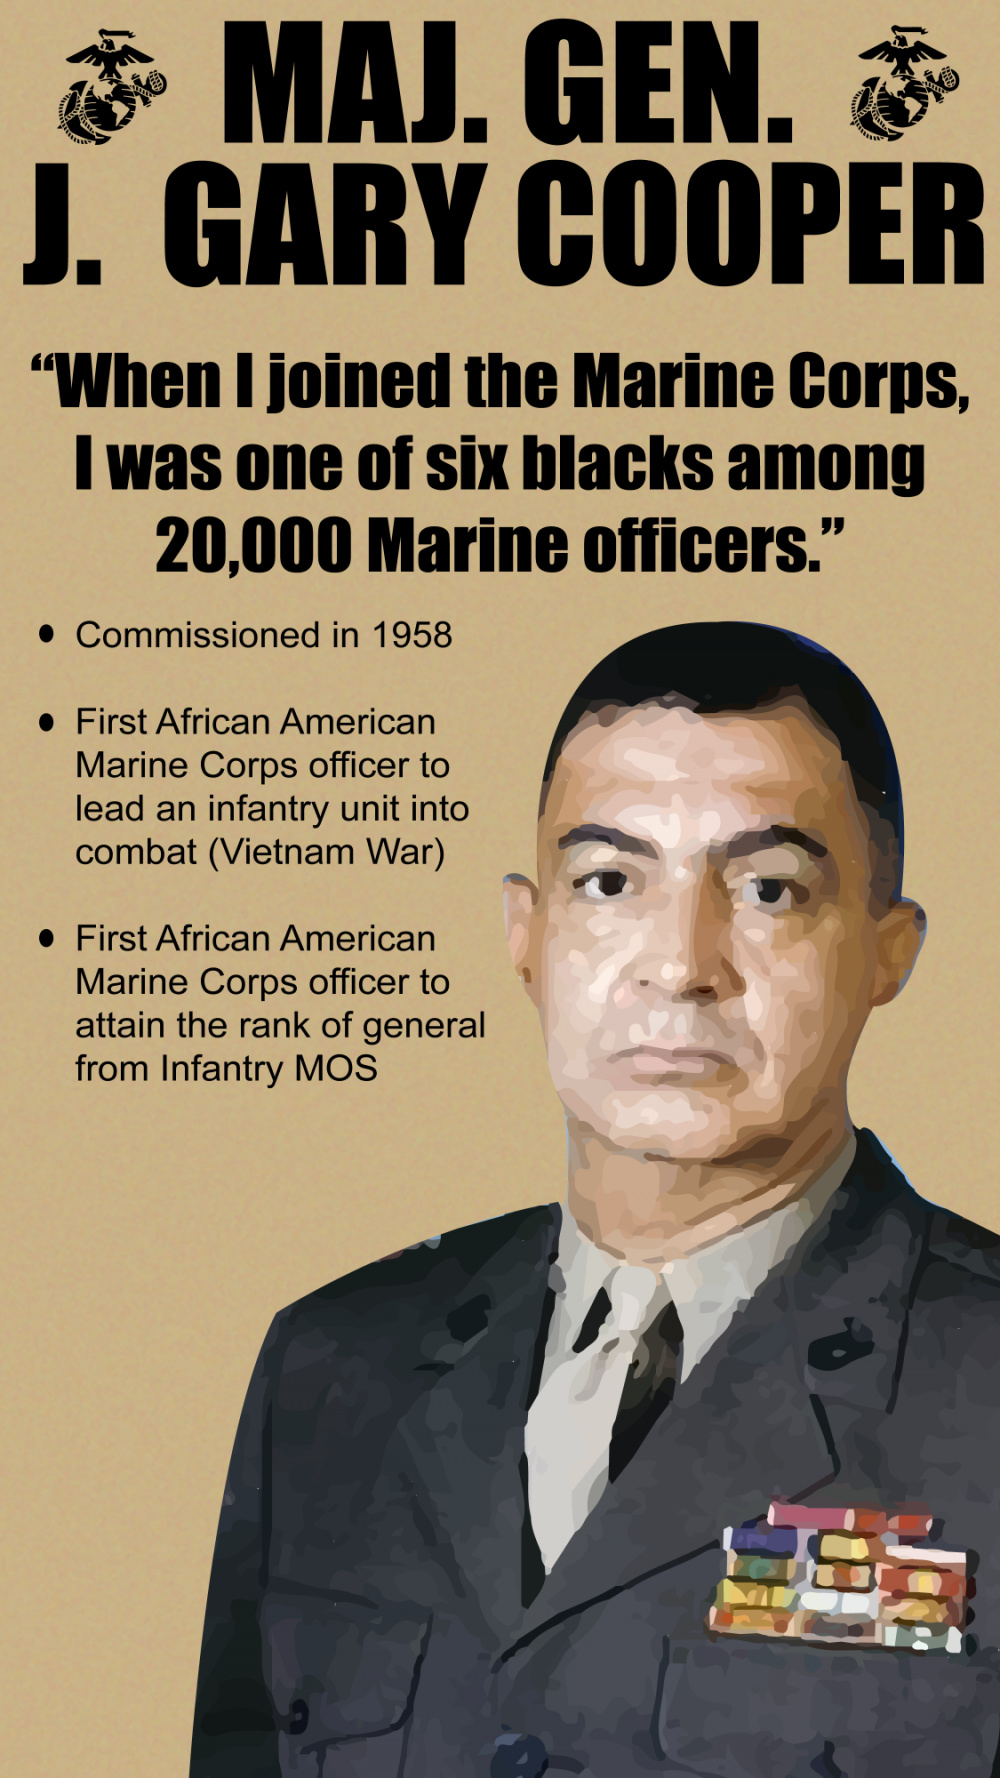 Celebrating Black History Month: Maj. Gen. J. Gary Cooper